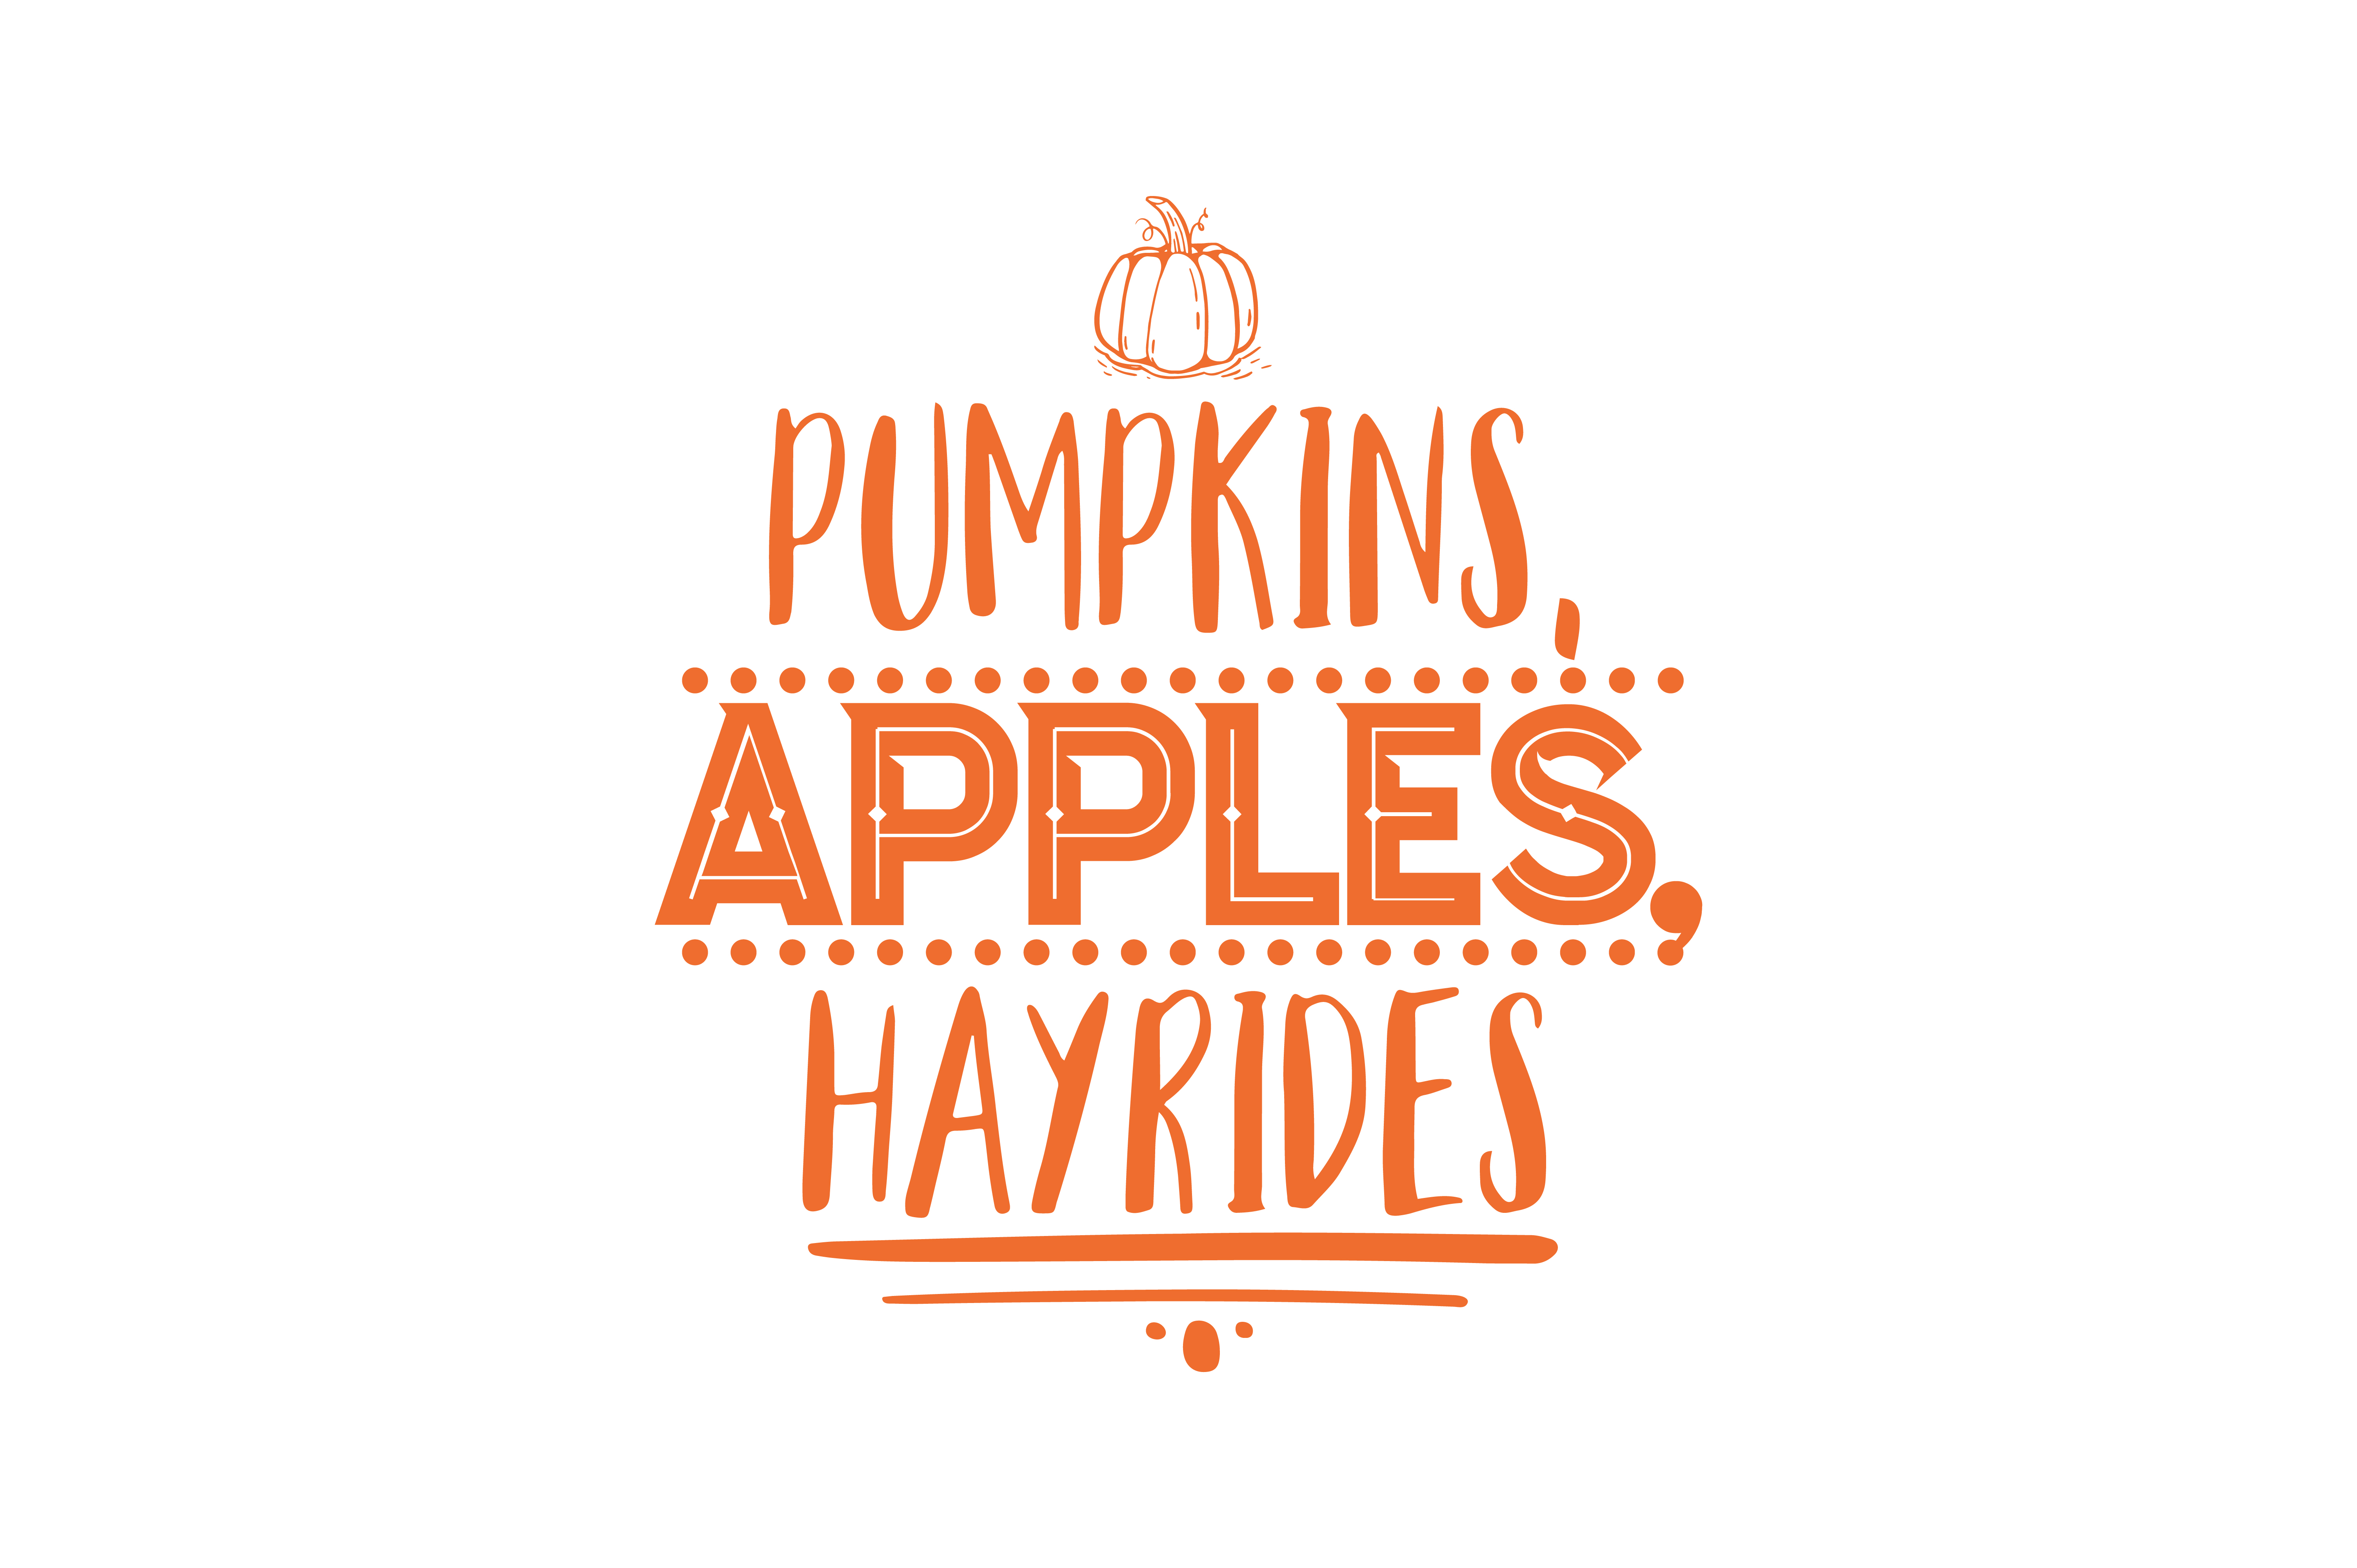 Pumpkins Apples Hayrides Graphic By Thelucky Creative Fabrica